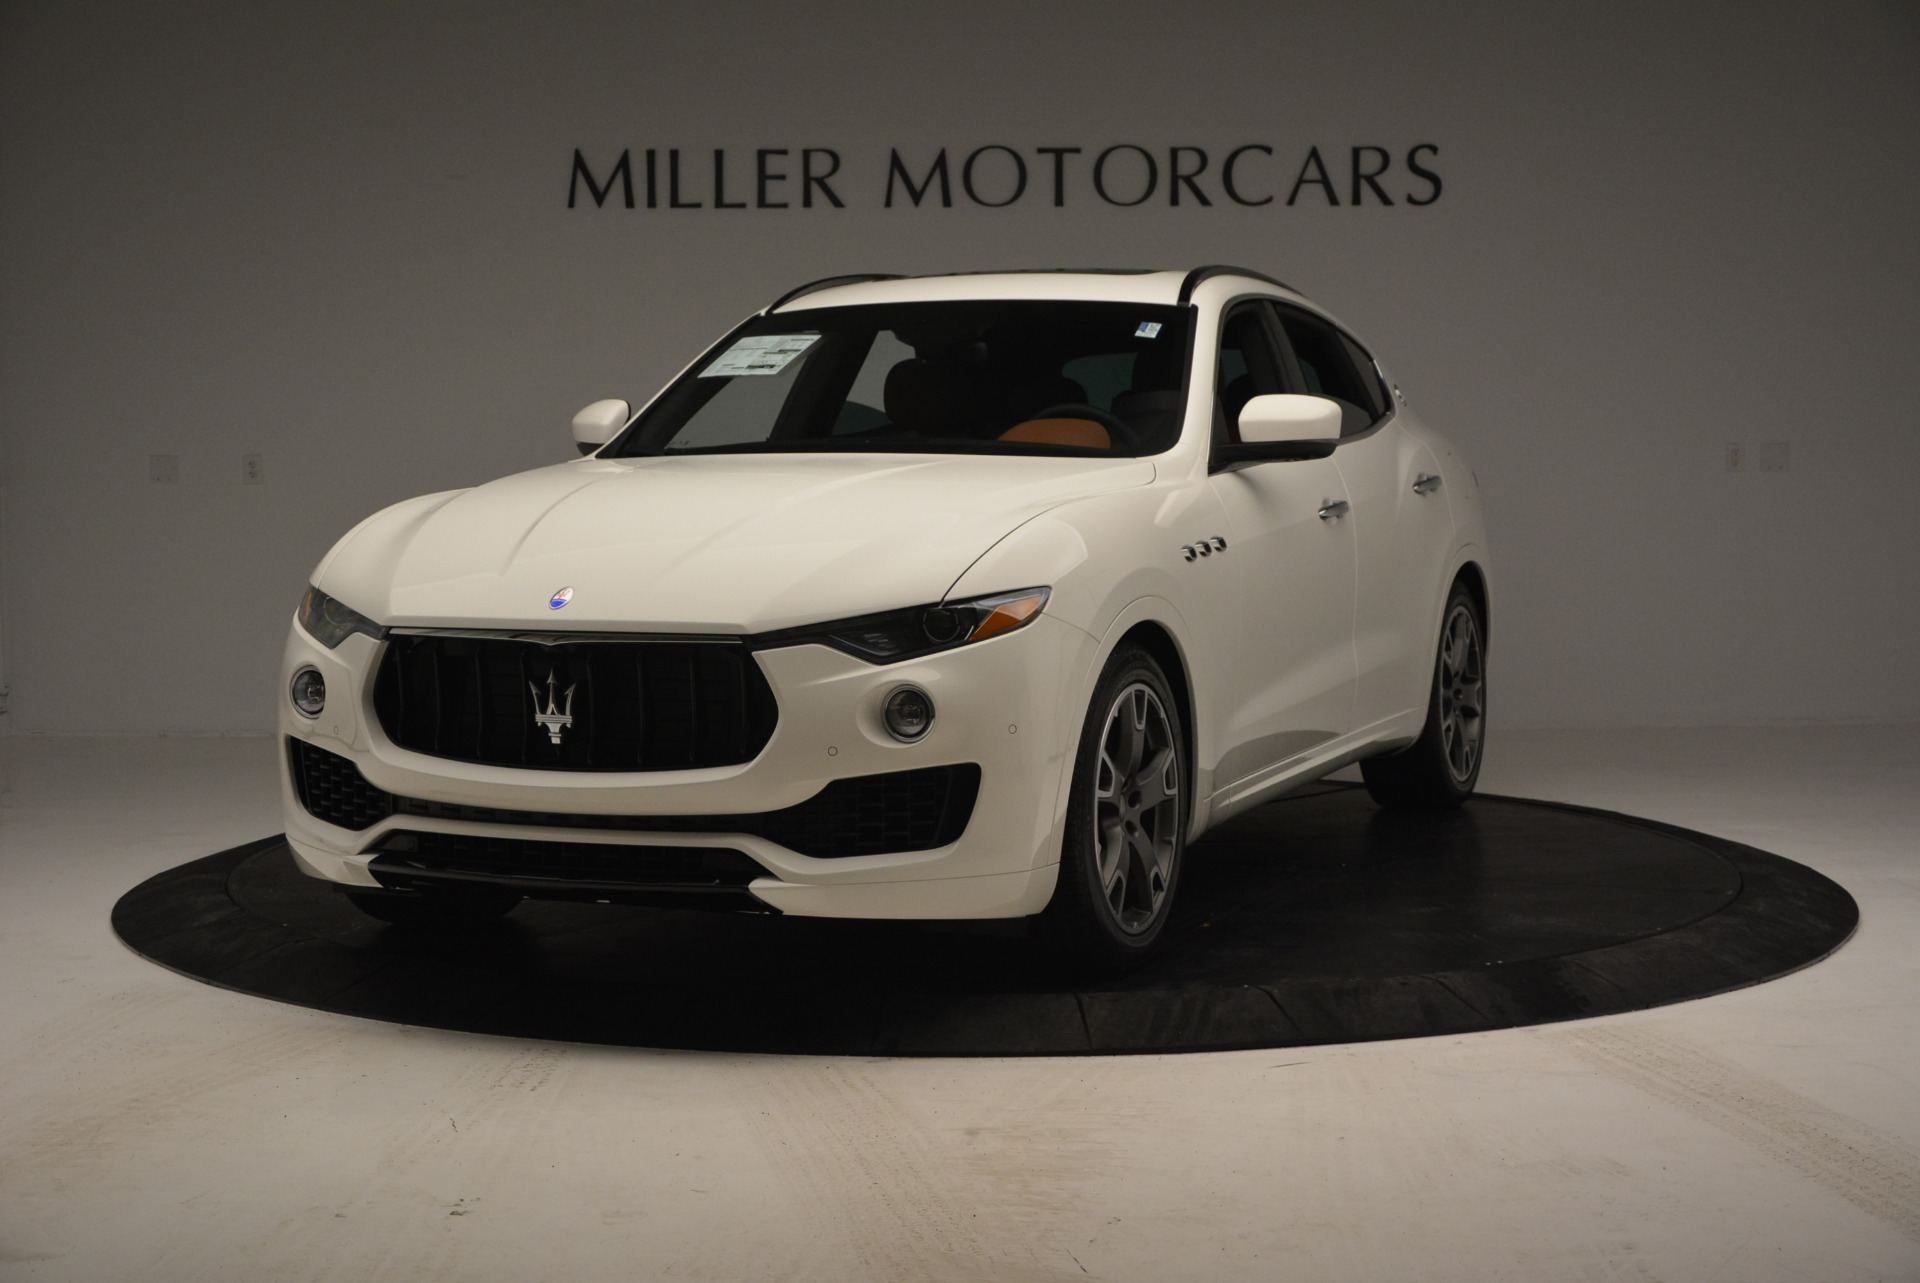 New 2017 Maserati Levante for sale Sold at Rolls-Royce Motor Cars Greenwich in Greenwich CT 06830 1